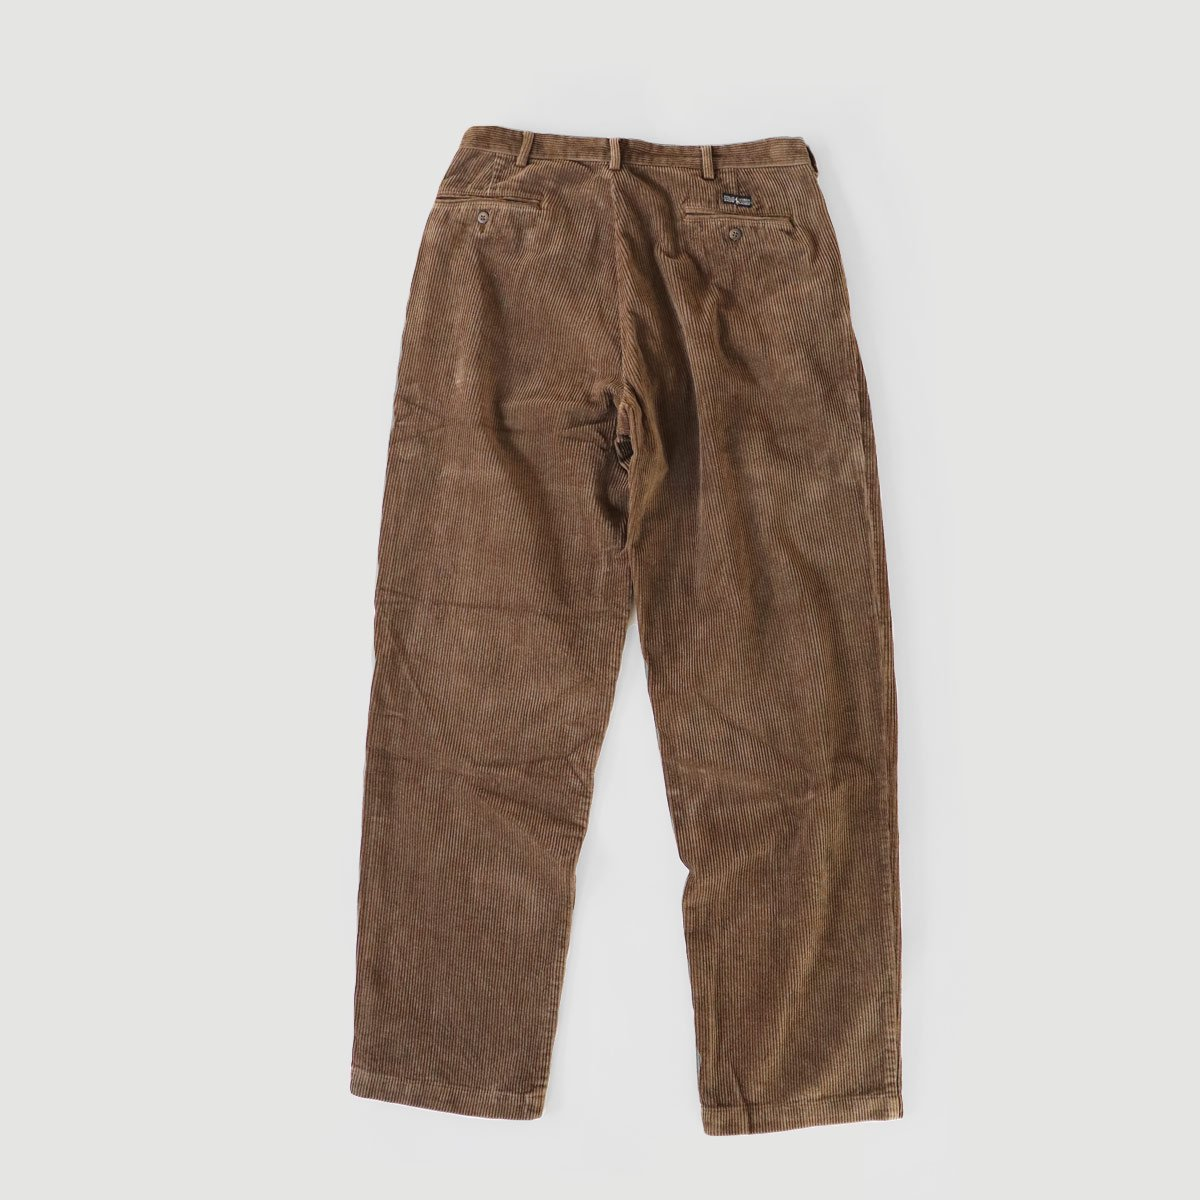 POLO RALPH LAUREN CORDUROY PANTS 詳細画像3